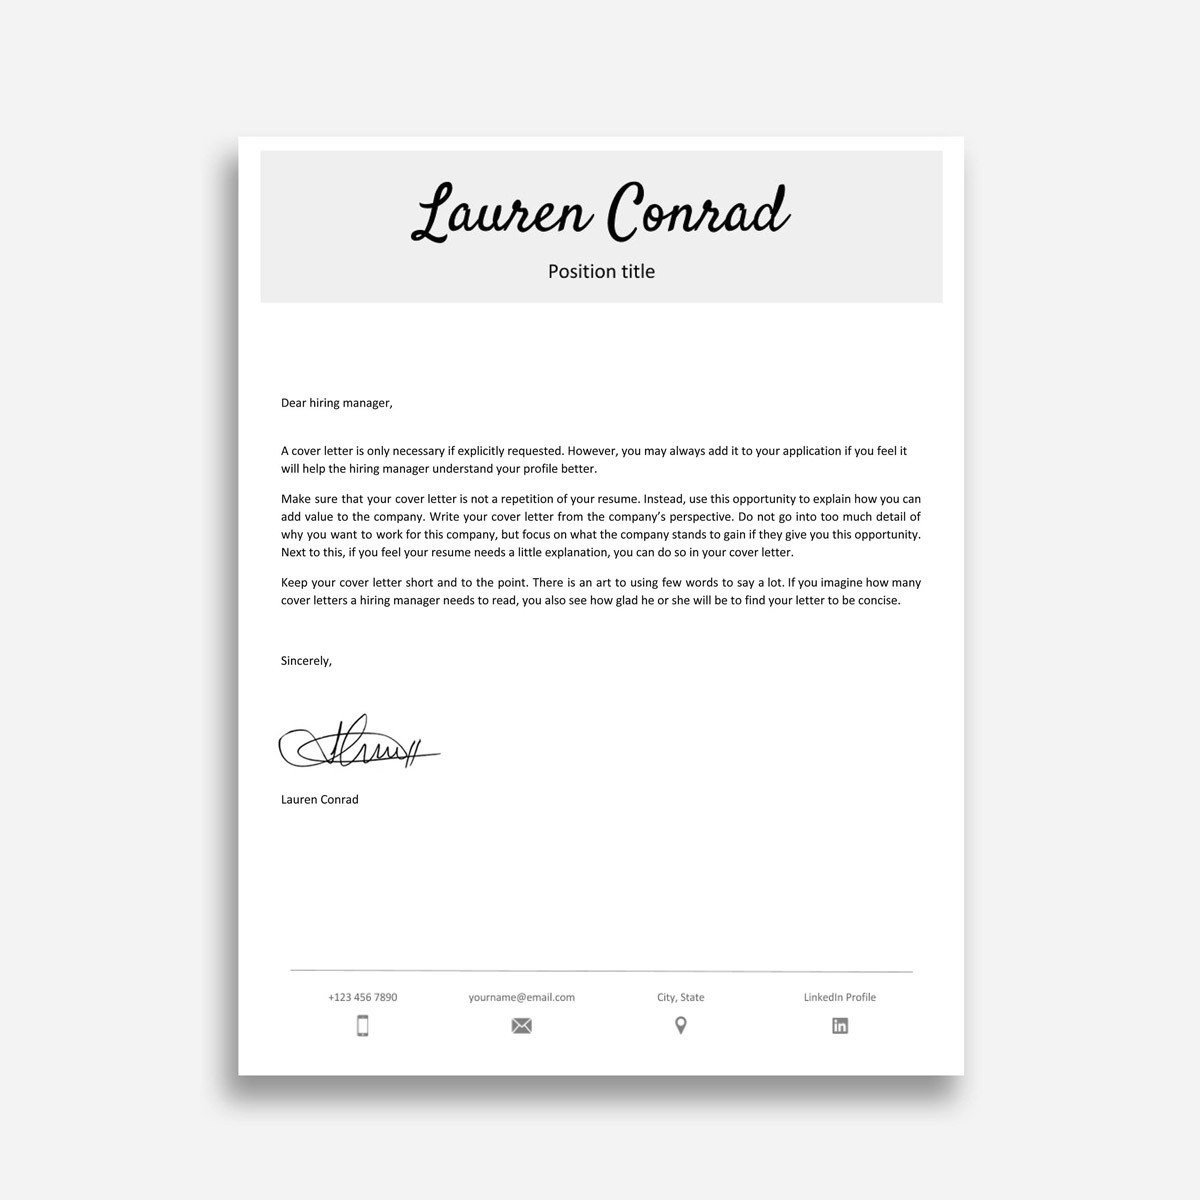 Google Docs Letter Template Google Docs Cover Letter Templates 9 Examples to Download now